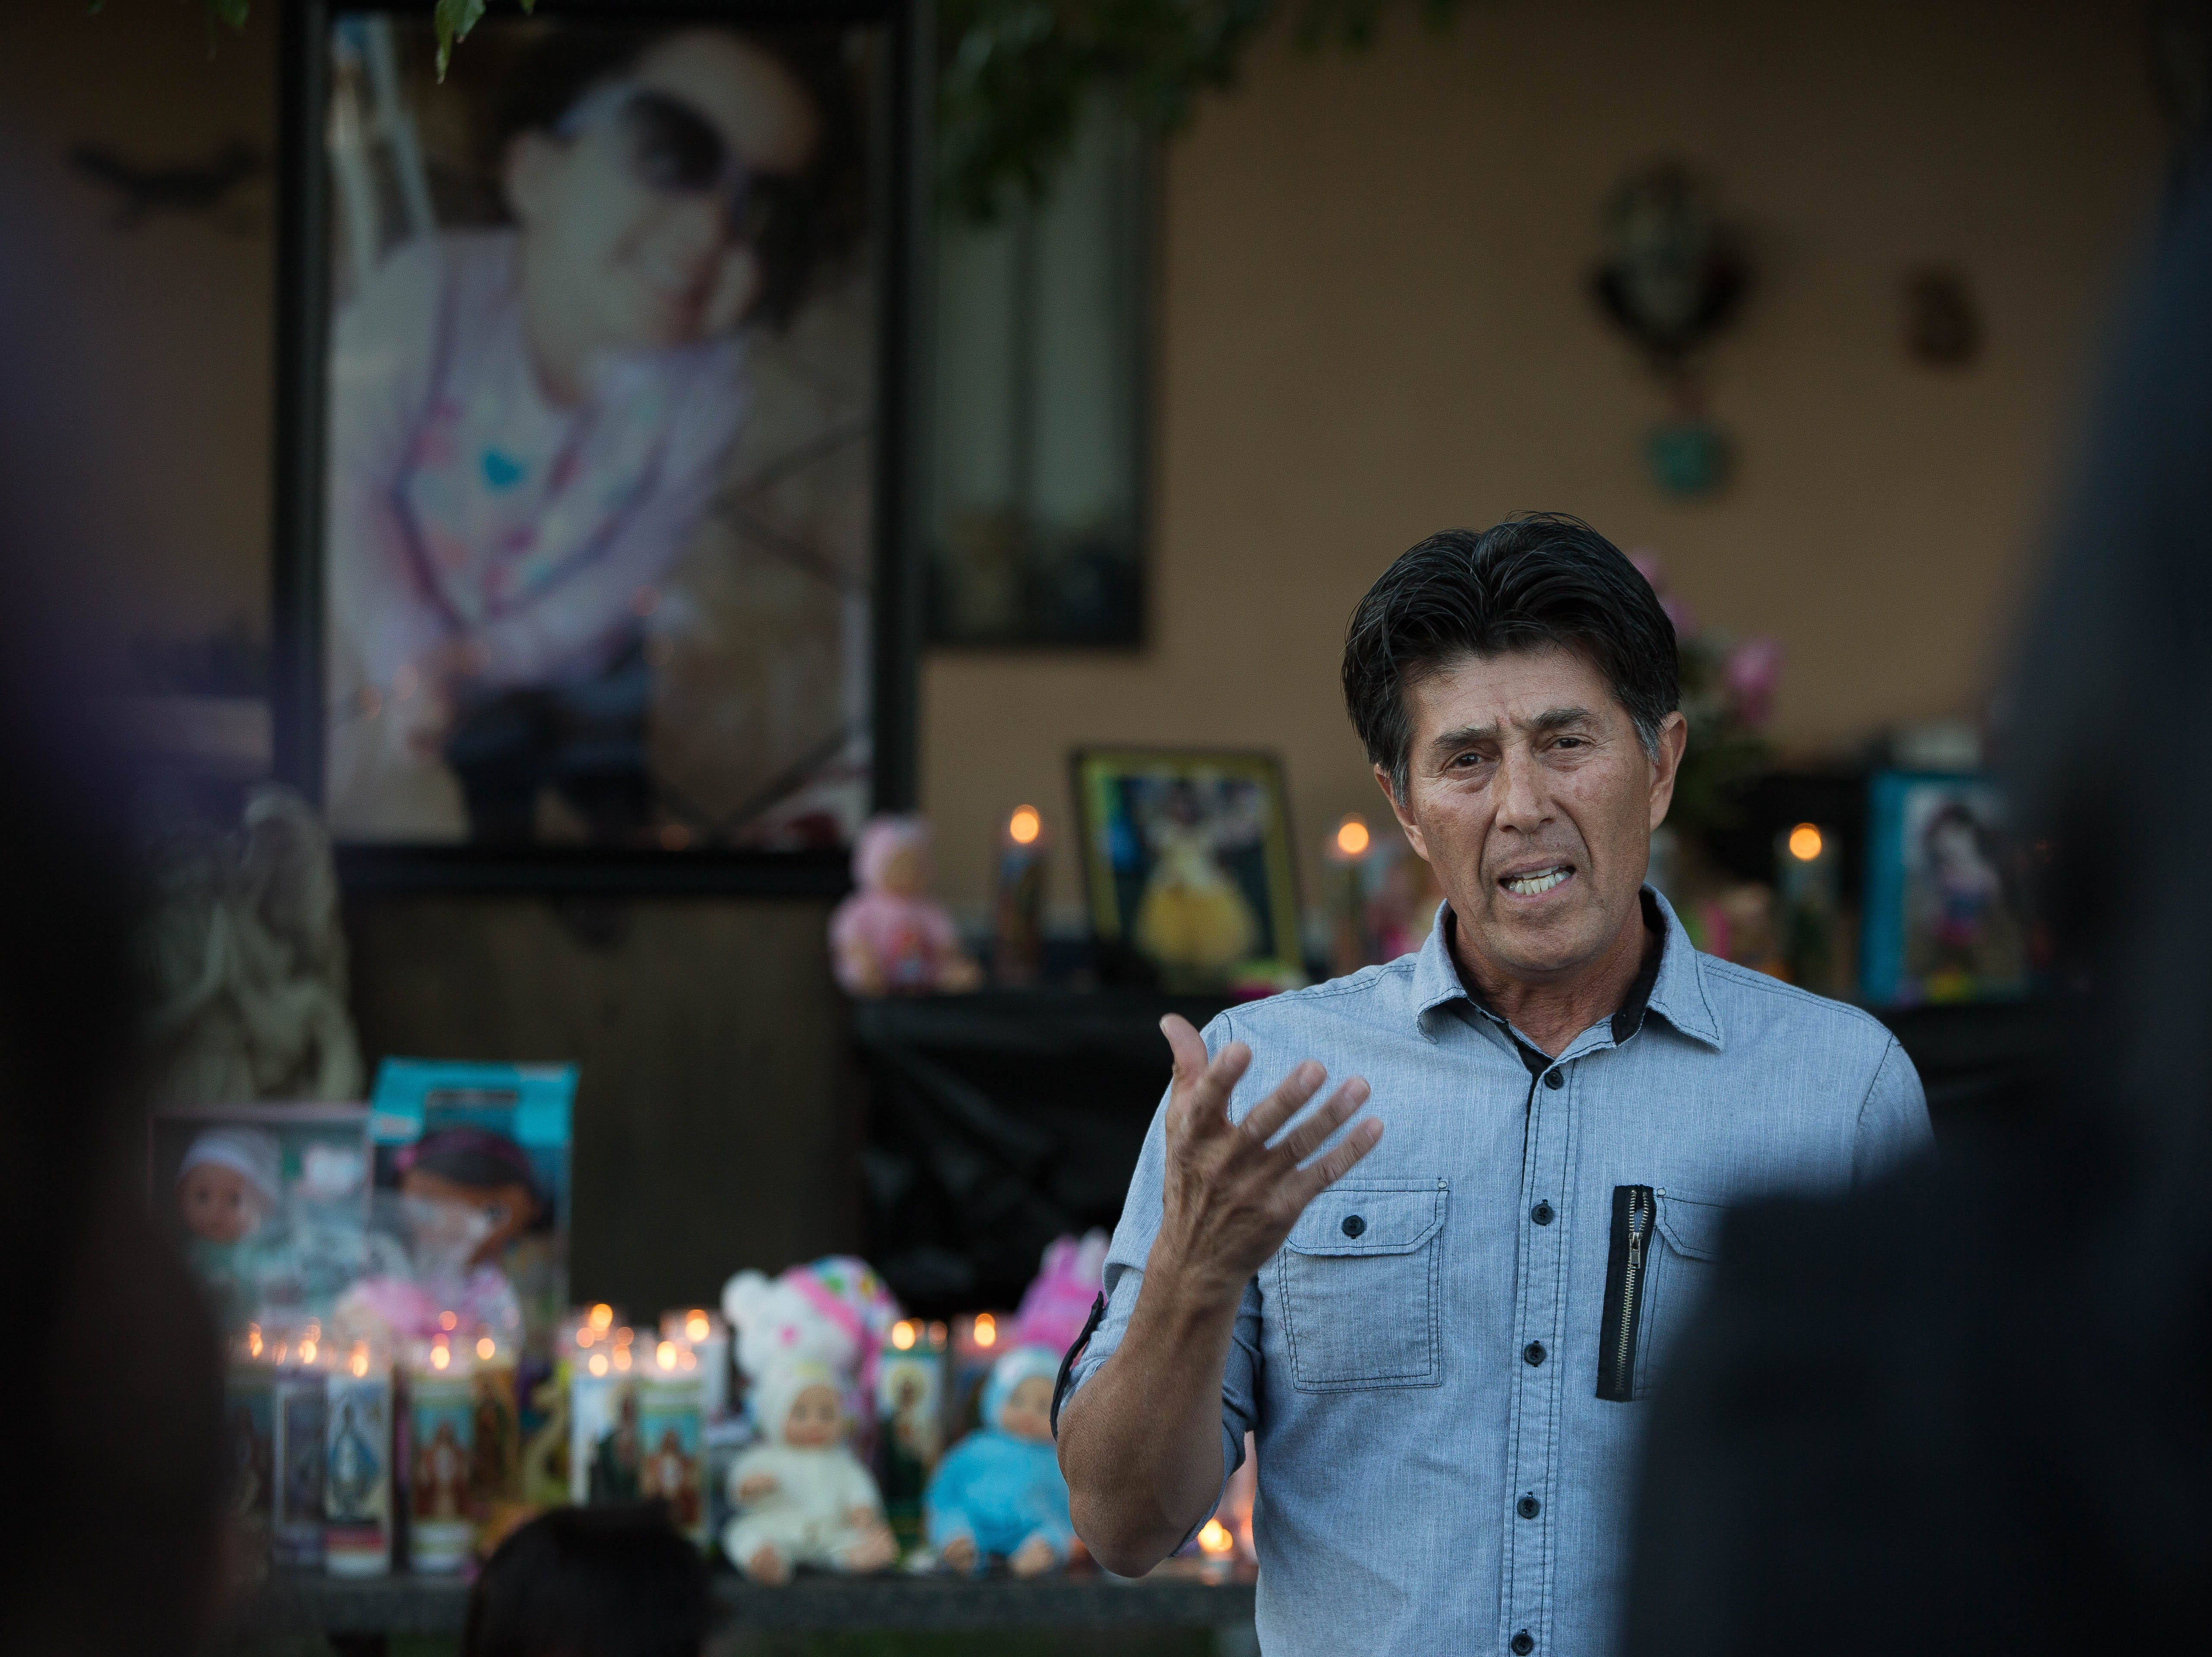 Jerry Acosta, a pastor close family friend of the Gonzales family, lead the friends and family of Fabiola Rodriguez, 2, in a prayer during a candlelight vigil in front of her maternal grandparents home on Poplar Ave. Friday September 7, 2018.